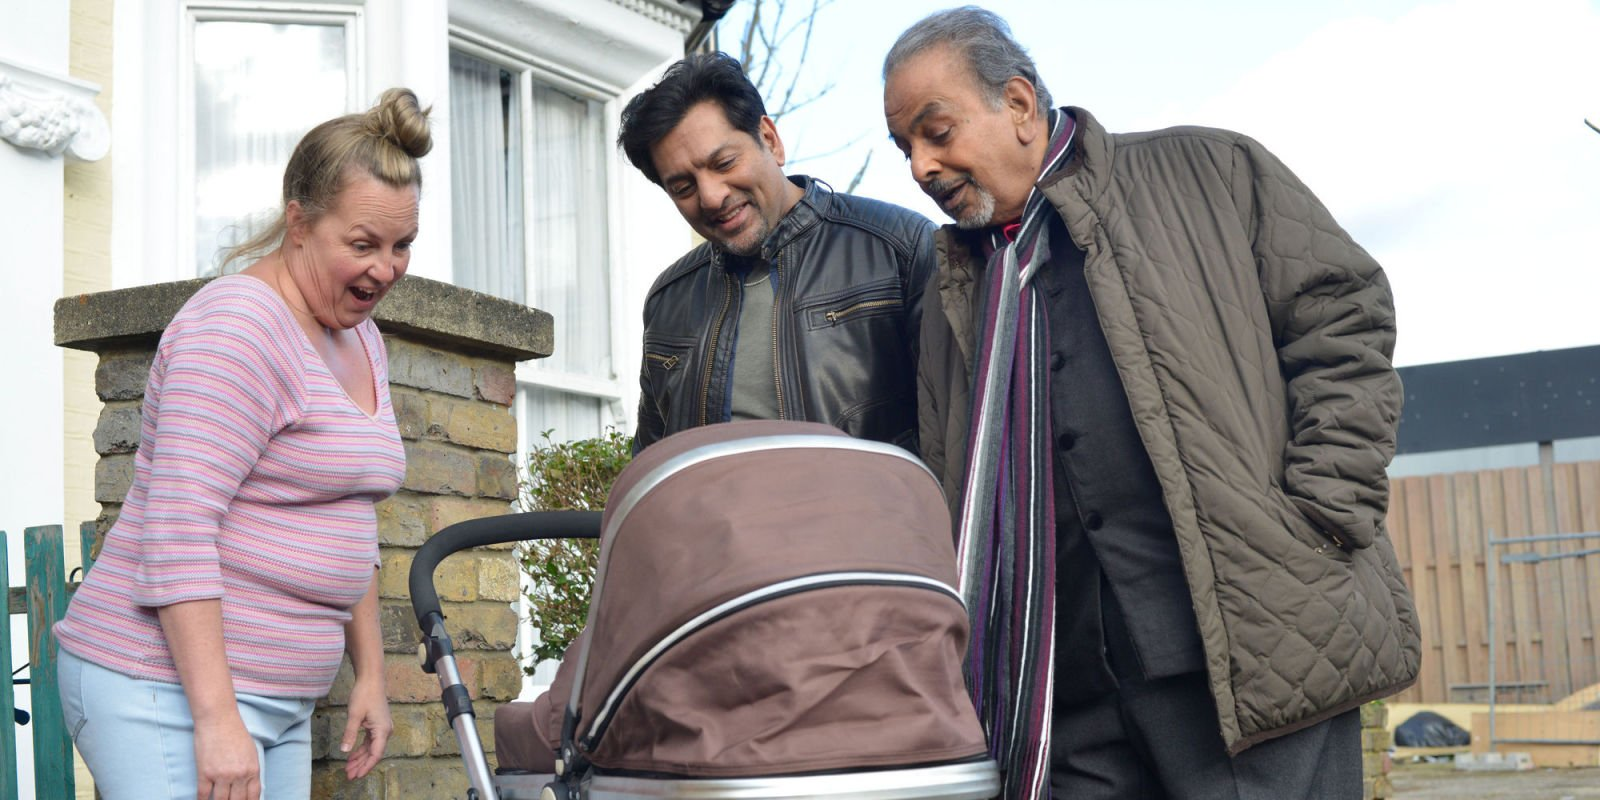 EastEnders is lining up baby drama for Arshad and Mariam Ahmed next week